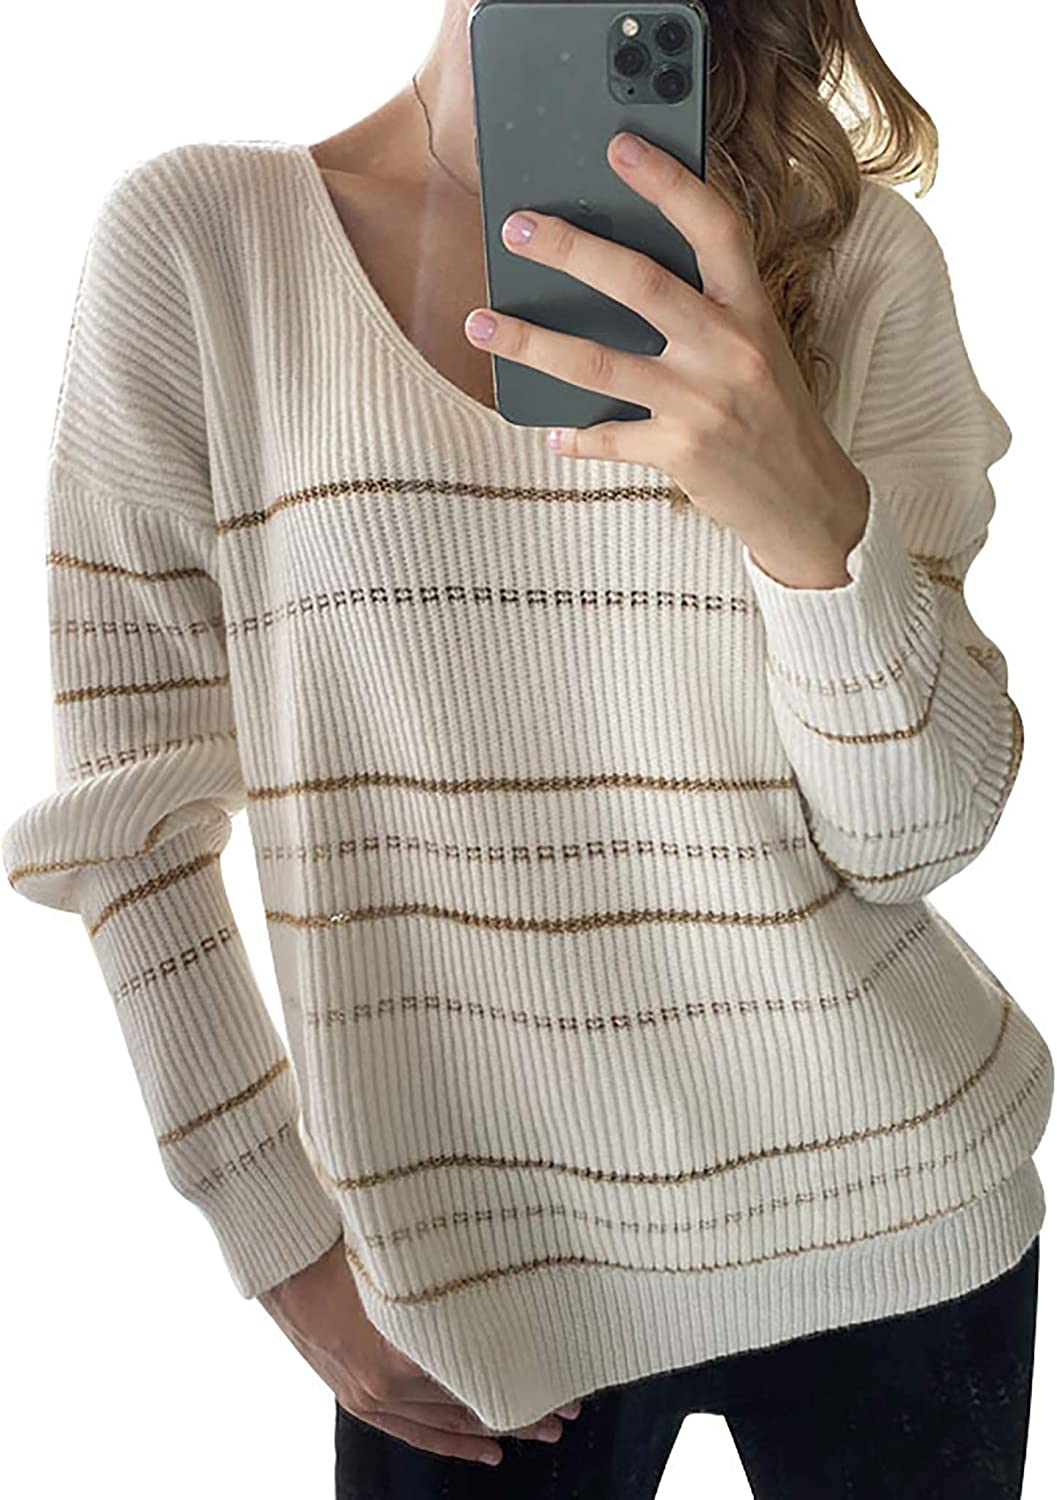 BTFBM Women Casual Striped Print Slouchy Sweaters Long Sleeve Wide V Neck Plain Loose Soft Knitted Jumper Pullover Tops